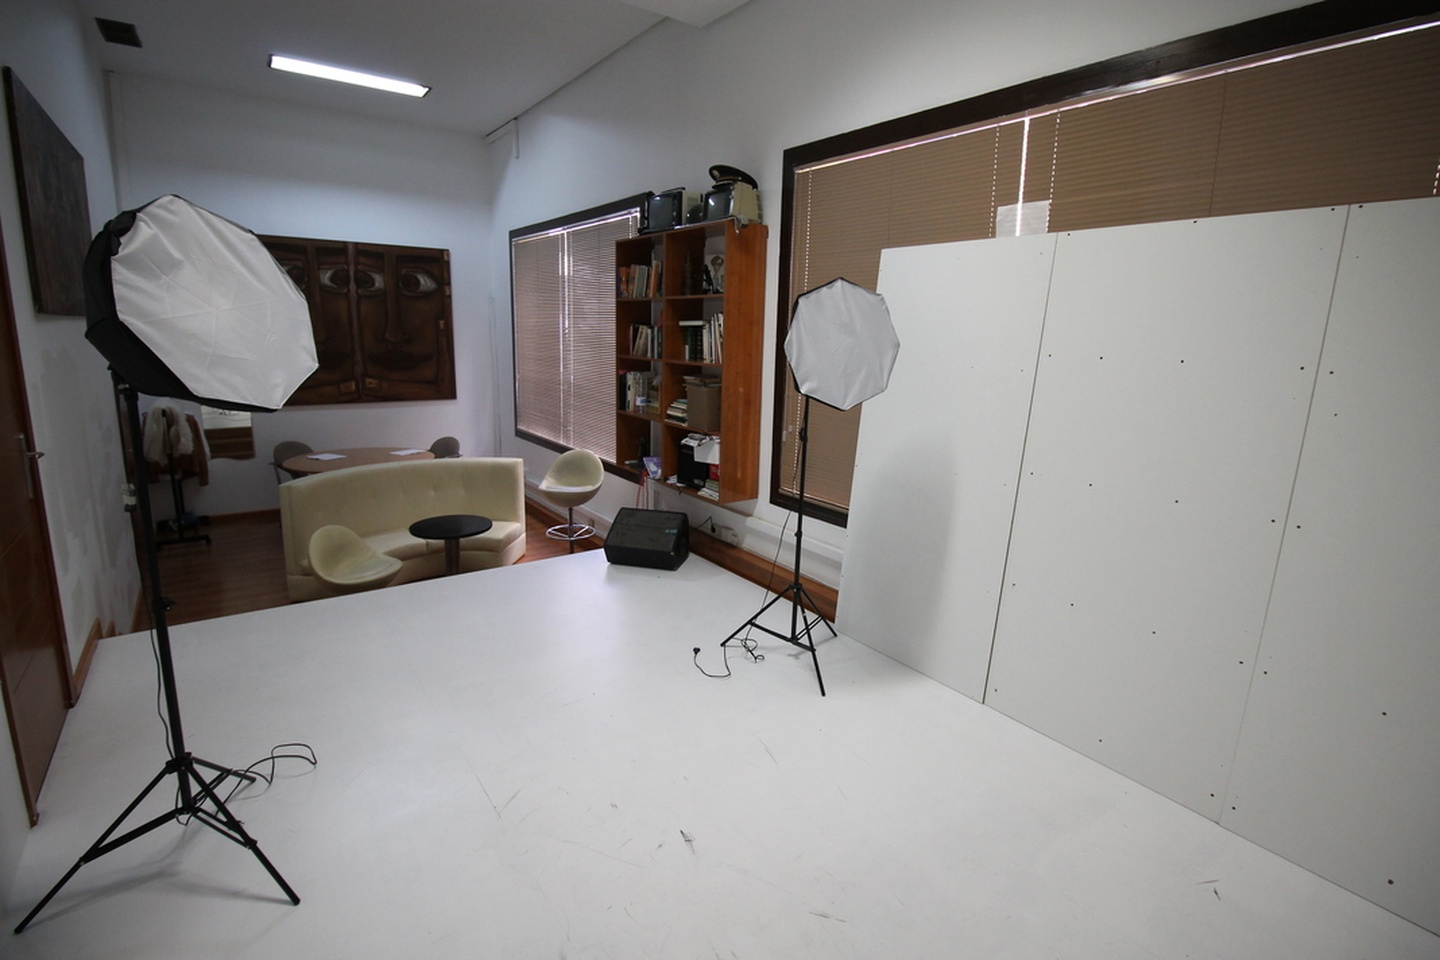 Malaga workshop spaces Photography studio My Casting Coworking - Photography Studio image 2